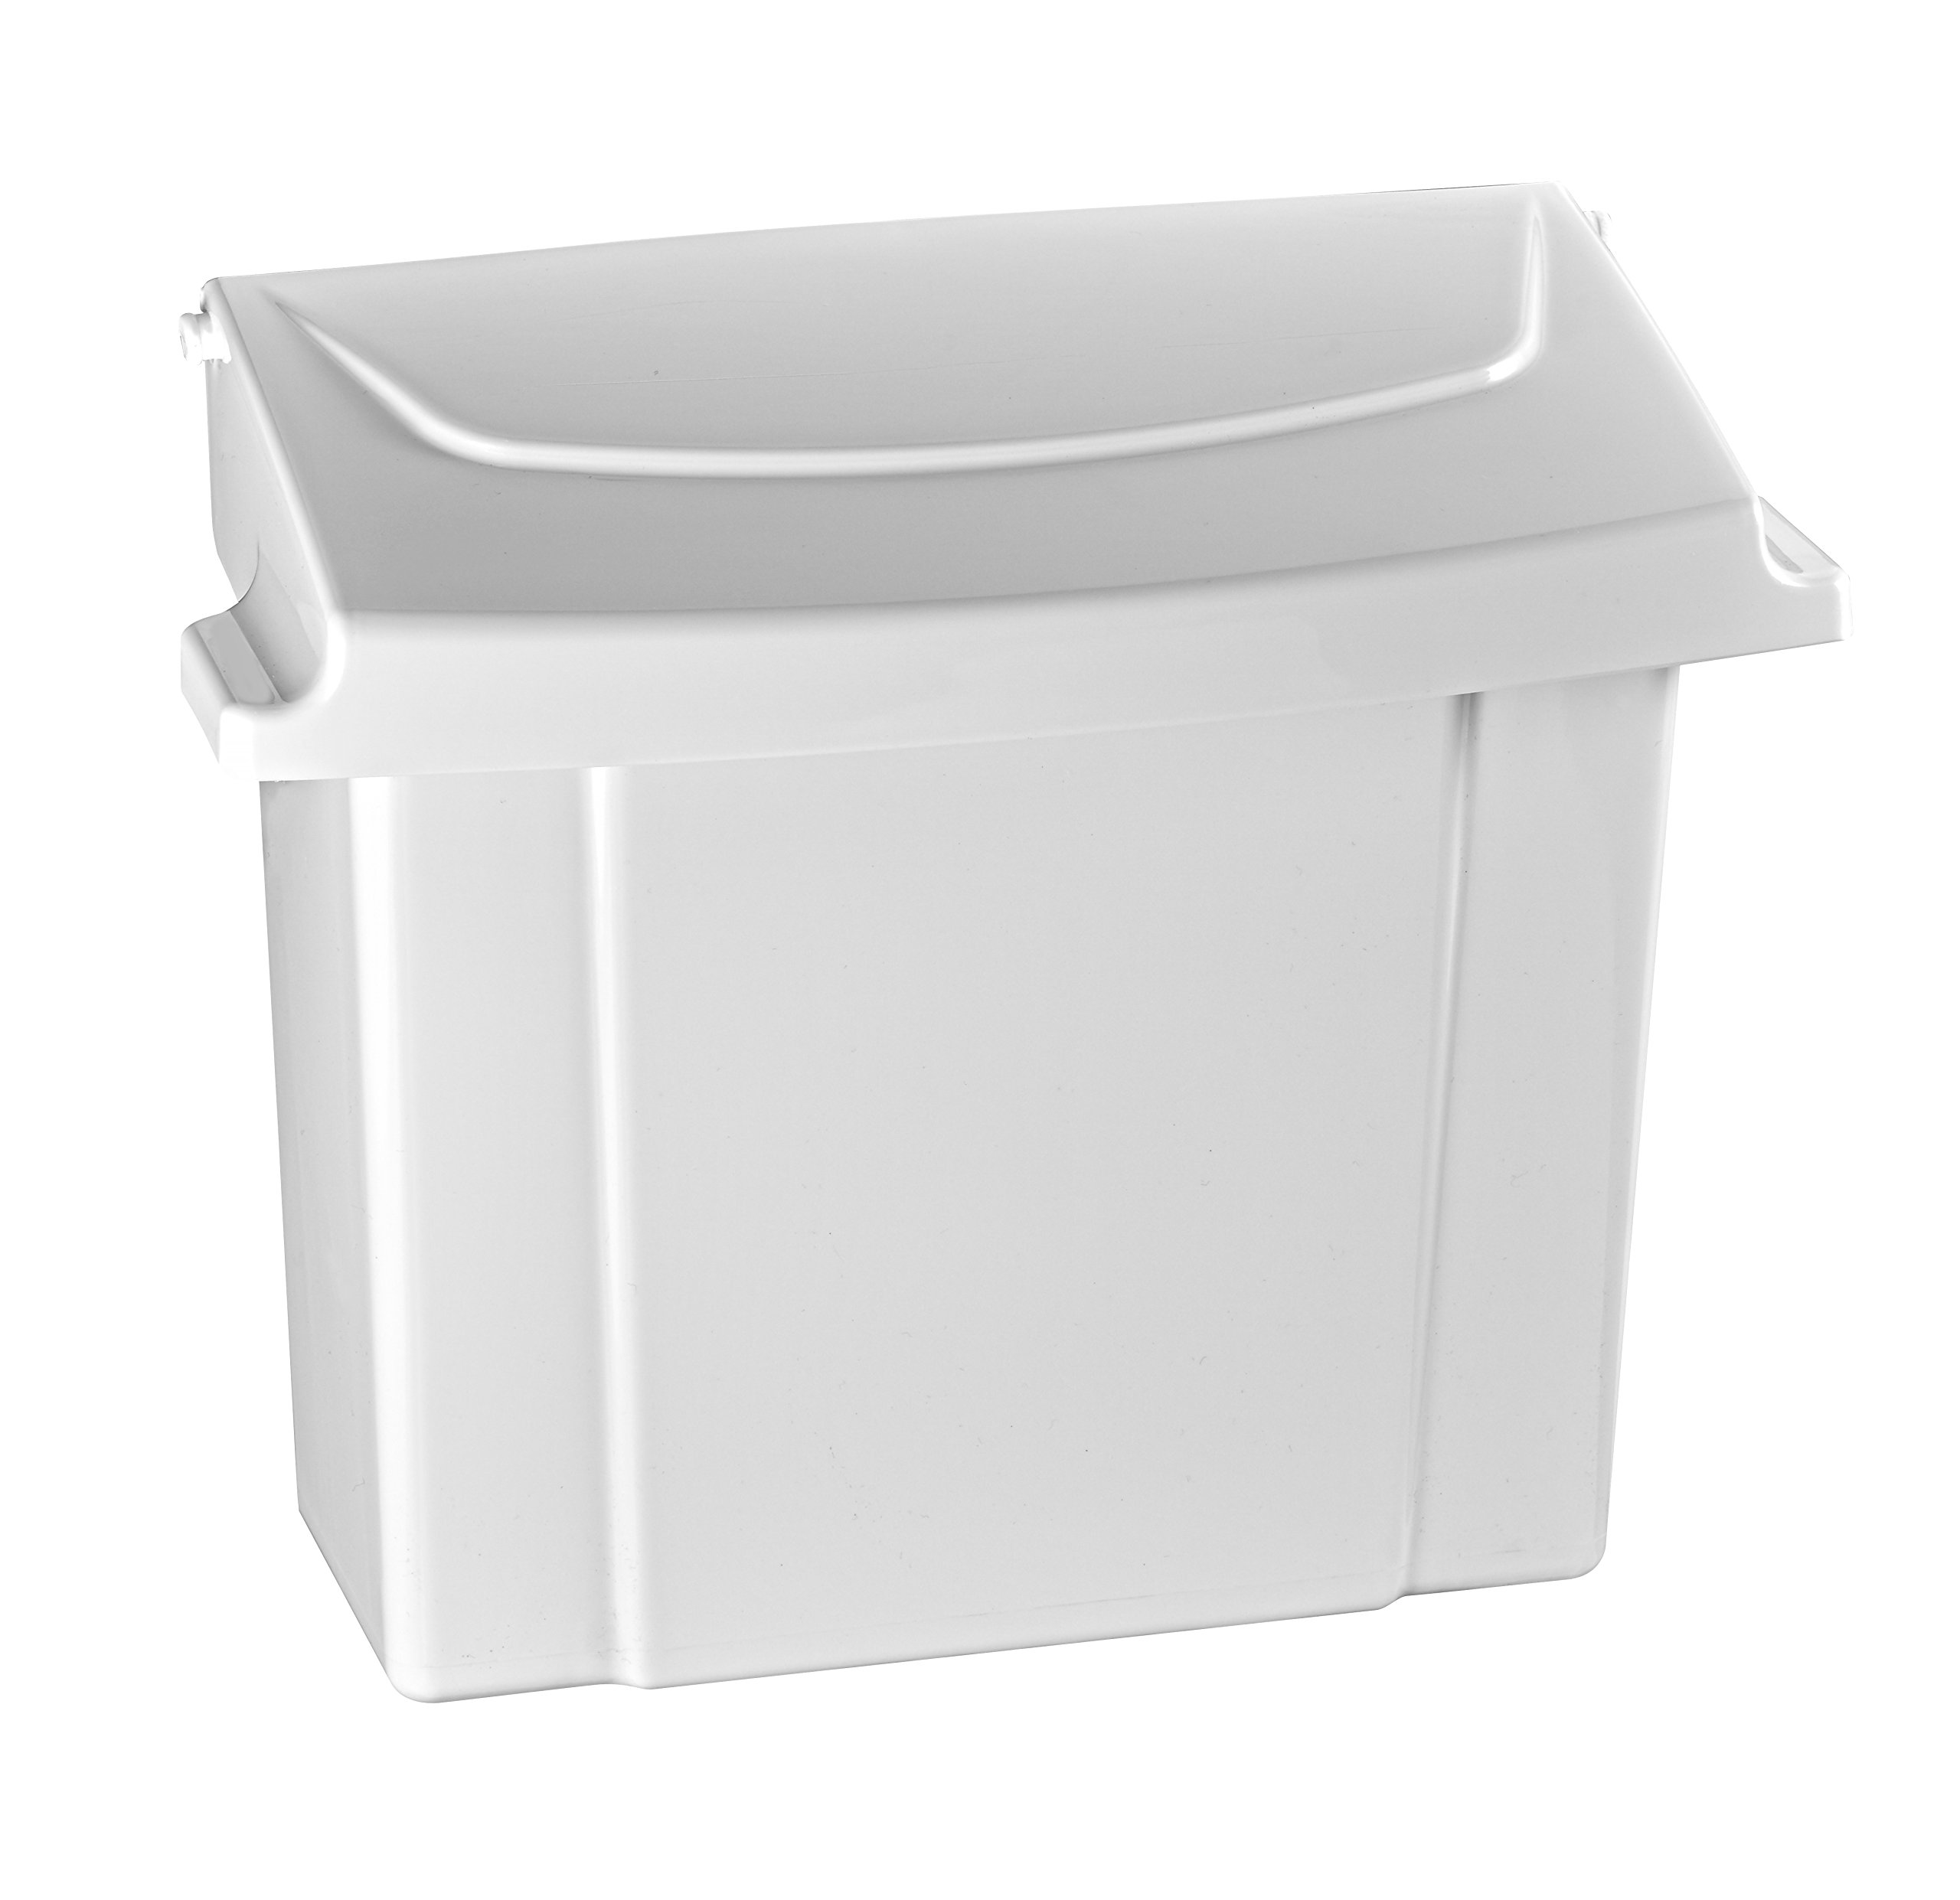 Alpine Sanitary Napkins Receptacle - Feminine Hygiene Products, Tampon & Waste Disposal Container - Durable ABS Plastic - Seals Tightly & Traps Odors -Easy Installation Hardware Included (White) by Alpine